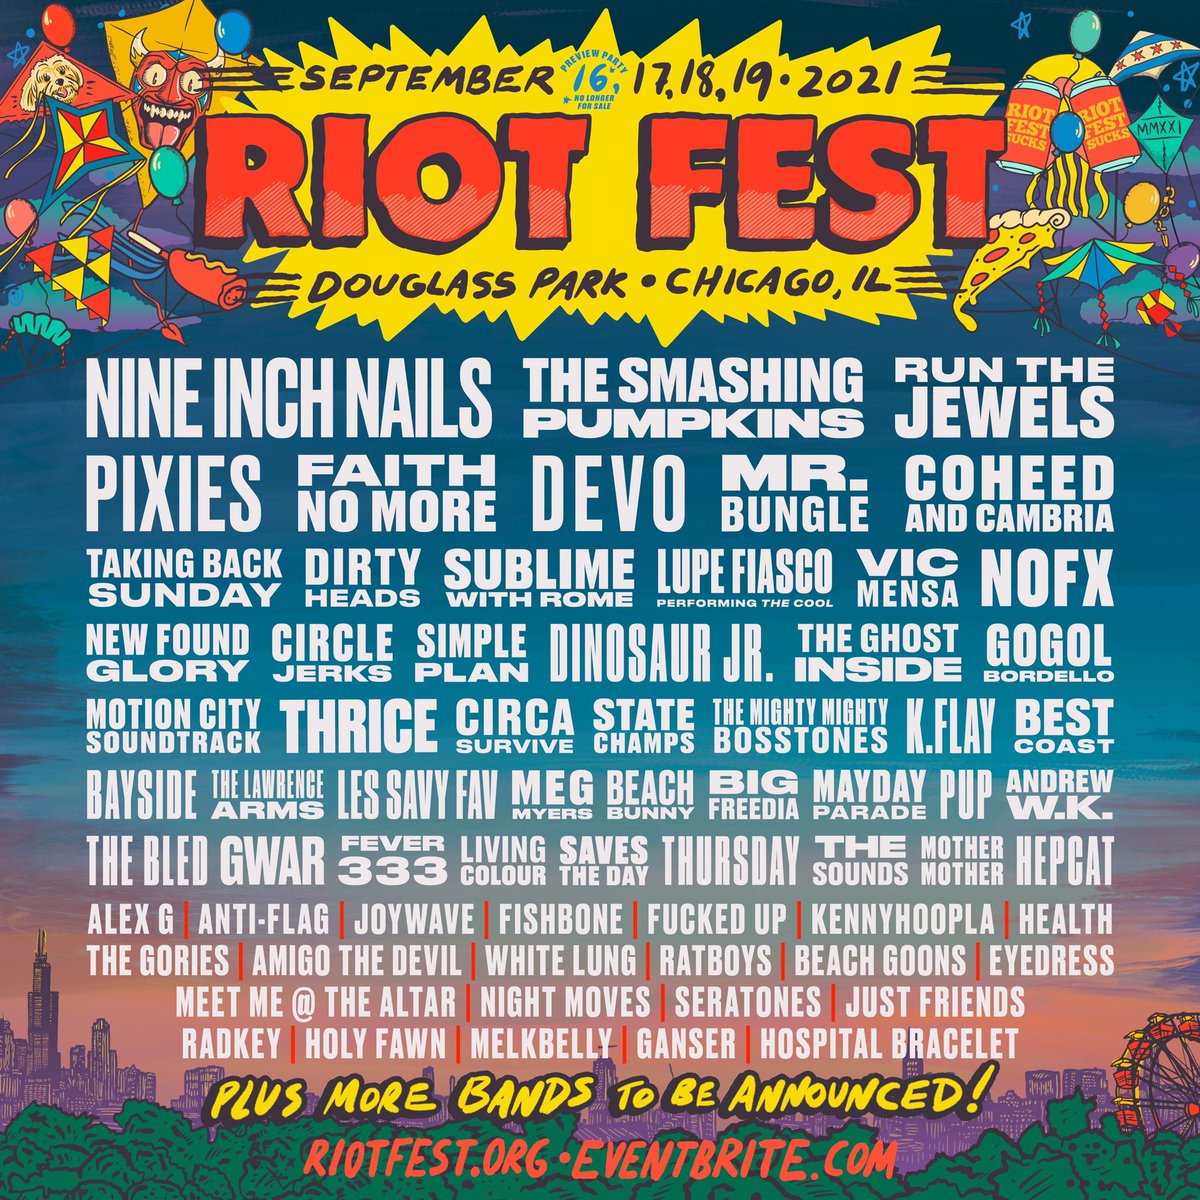 . @RiotFest this September! https://t.co/FhMW8krpRy